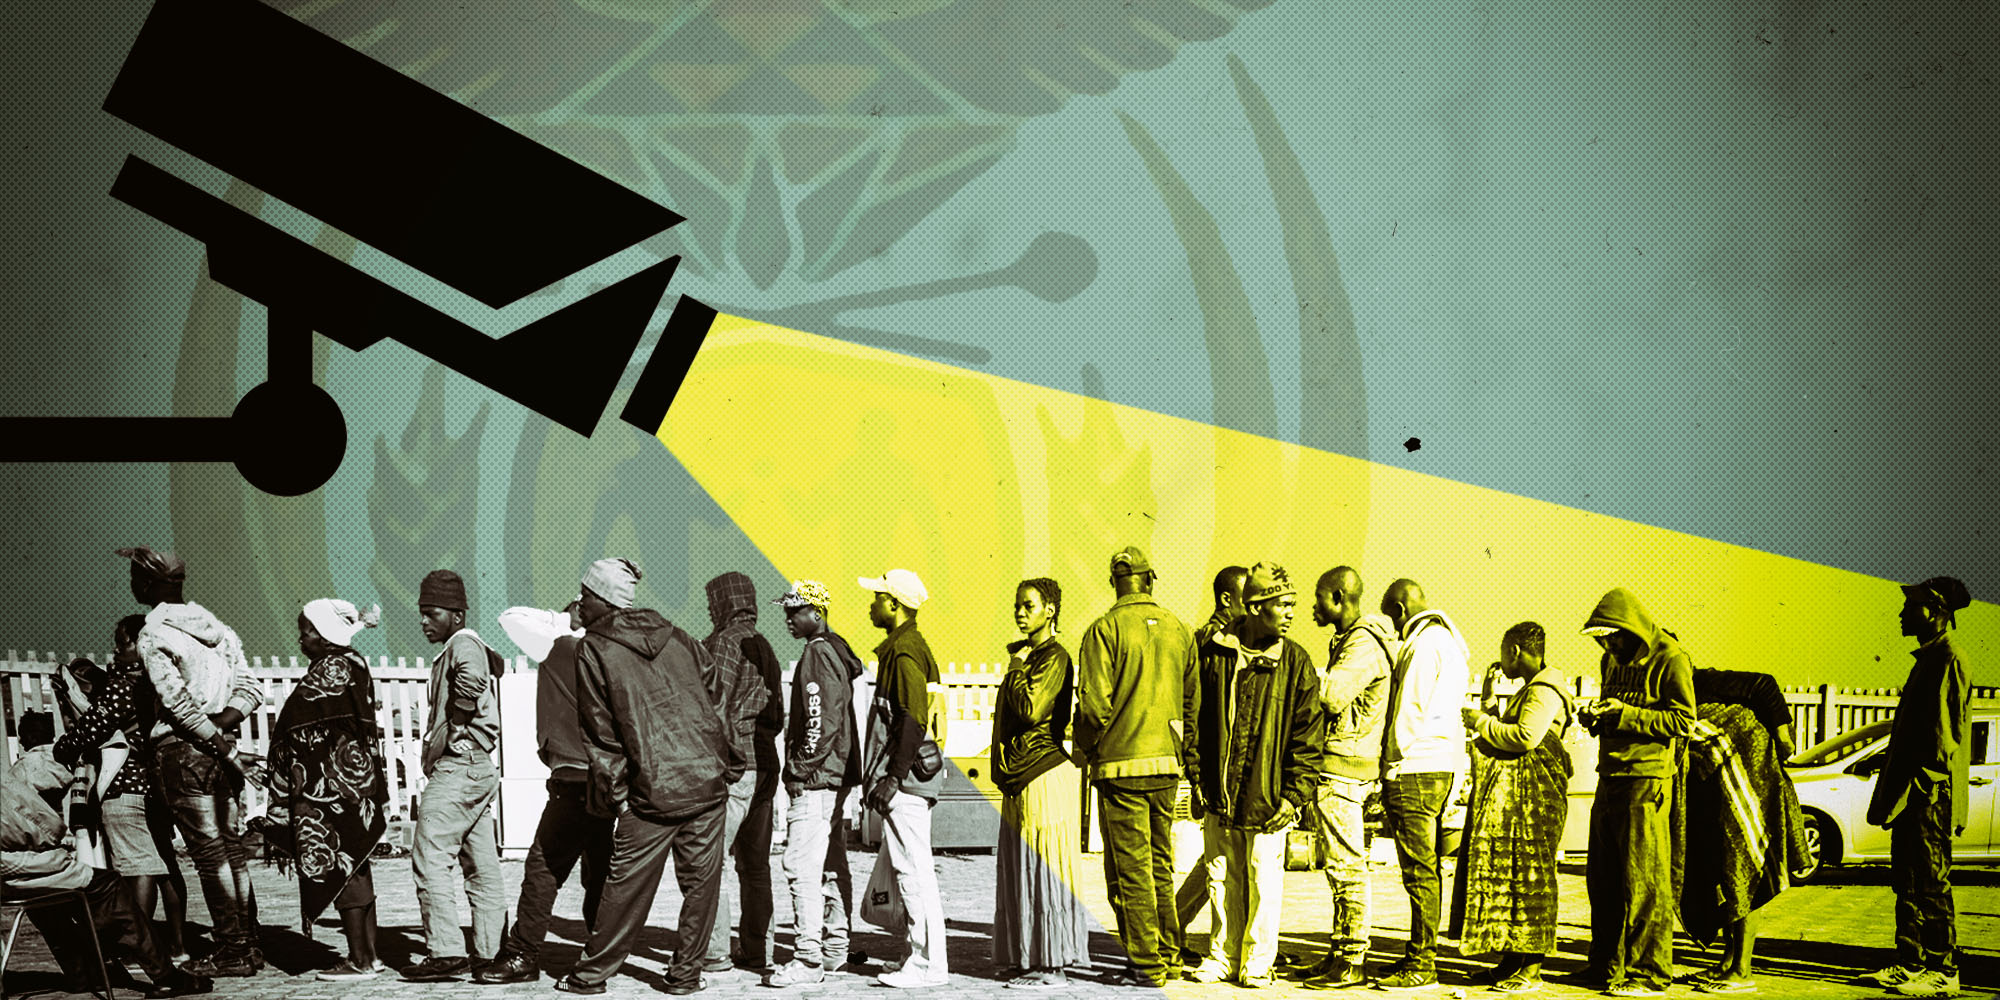 South Africa's emerging Department of Homeland Security